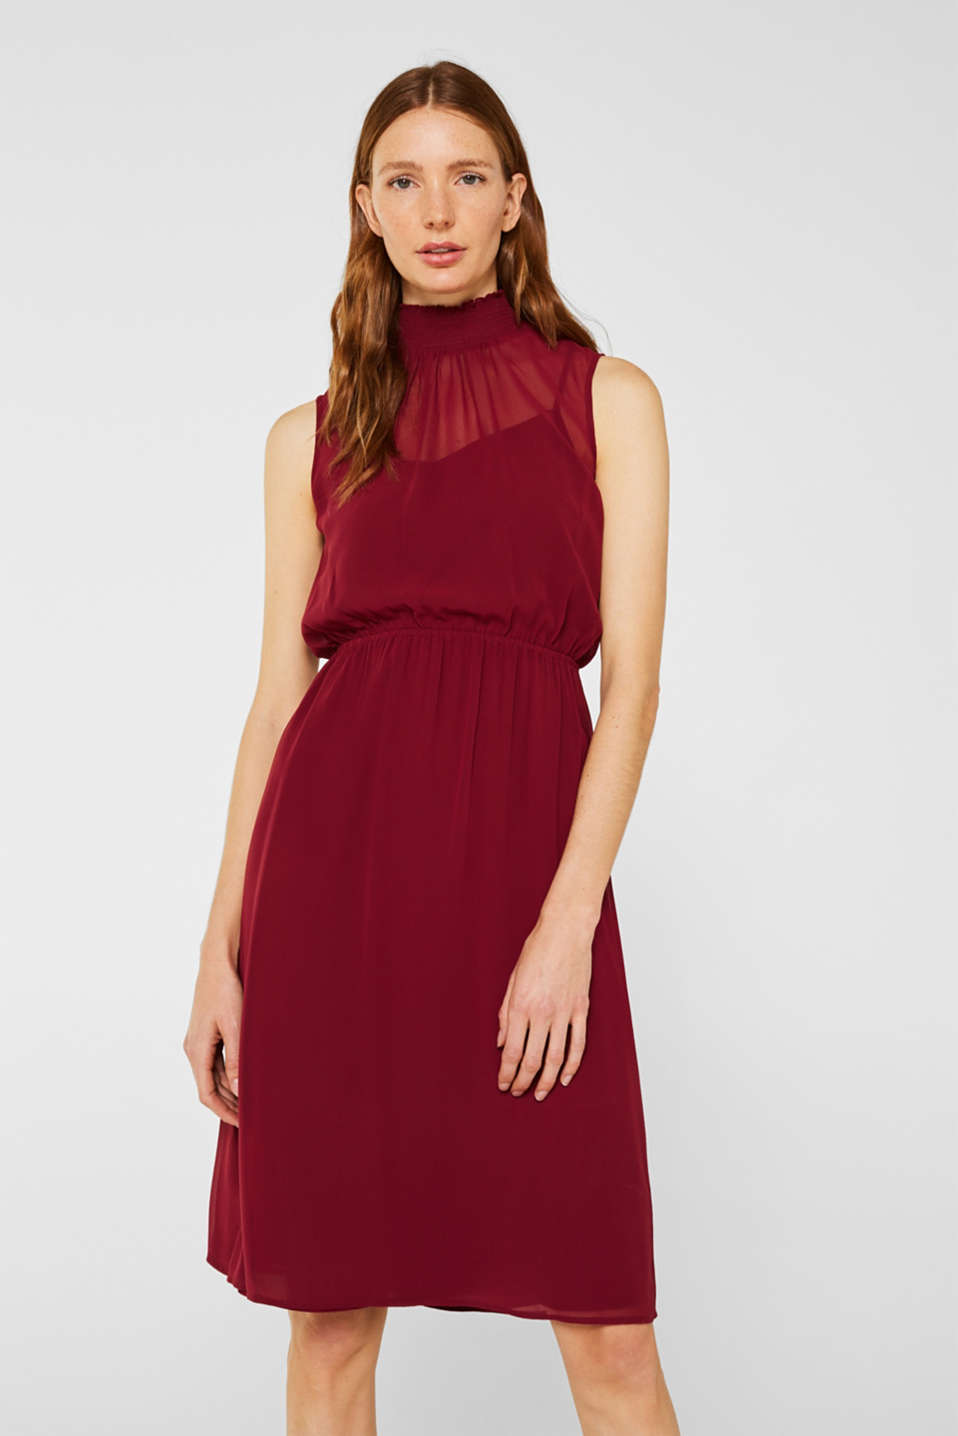 Esprit - Chiffon dress with slip